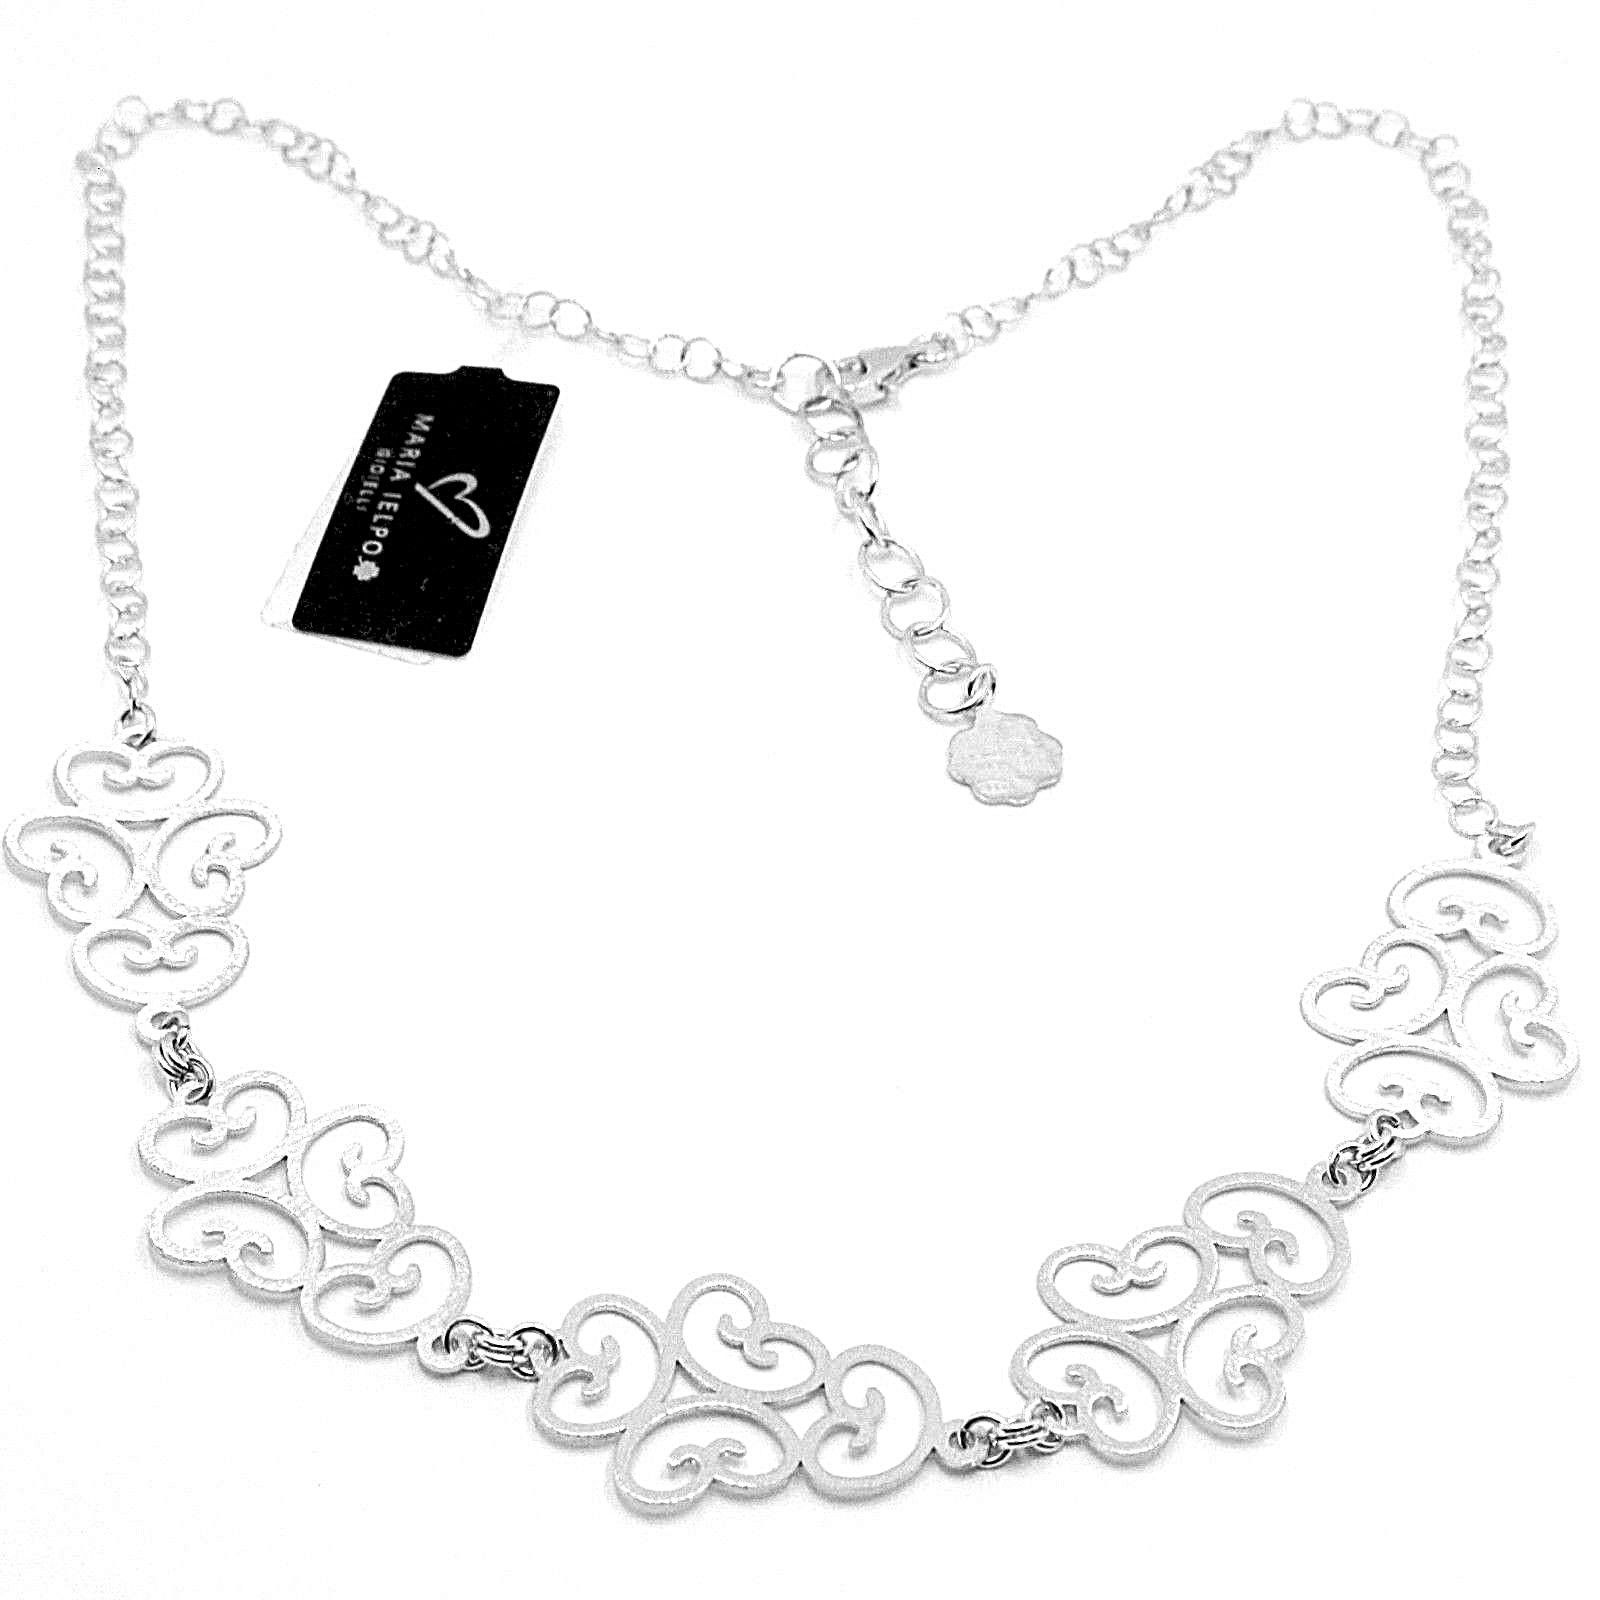 SILVER 925 NECKLACE, SATIN, PATTERN FLORAL BY MARY JANE IELPO, MADE IN ITALY